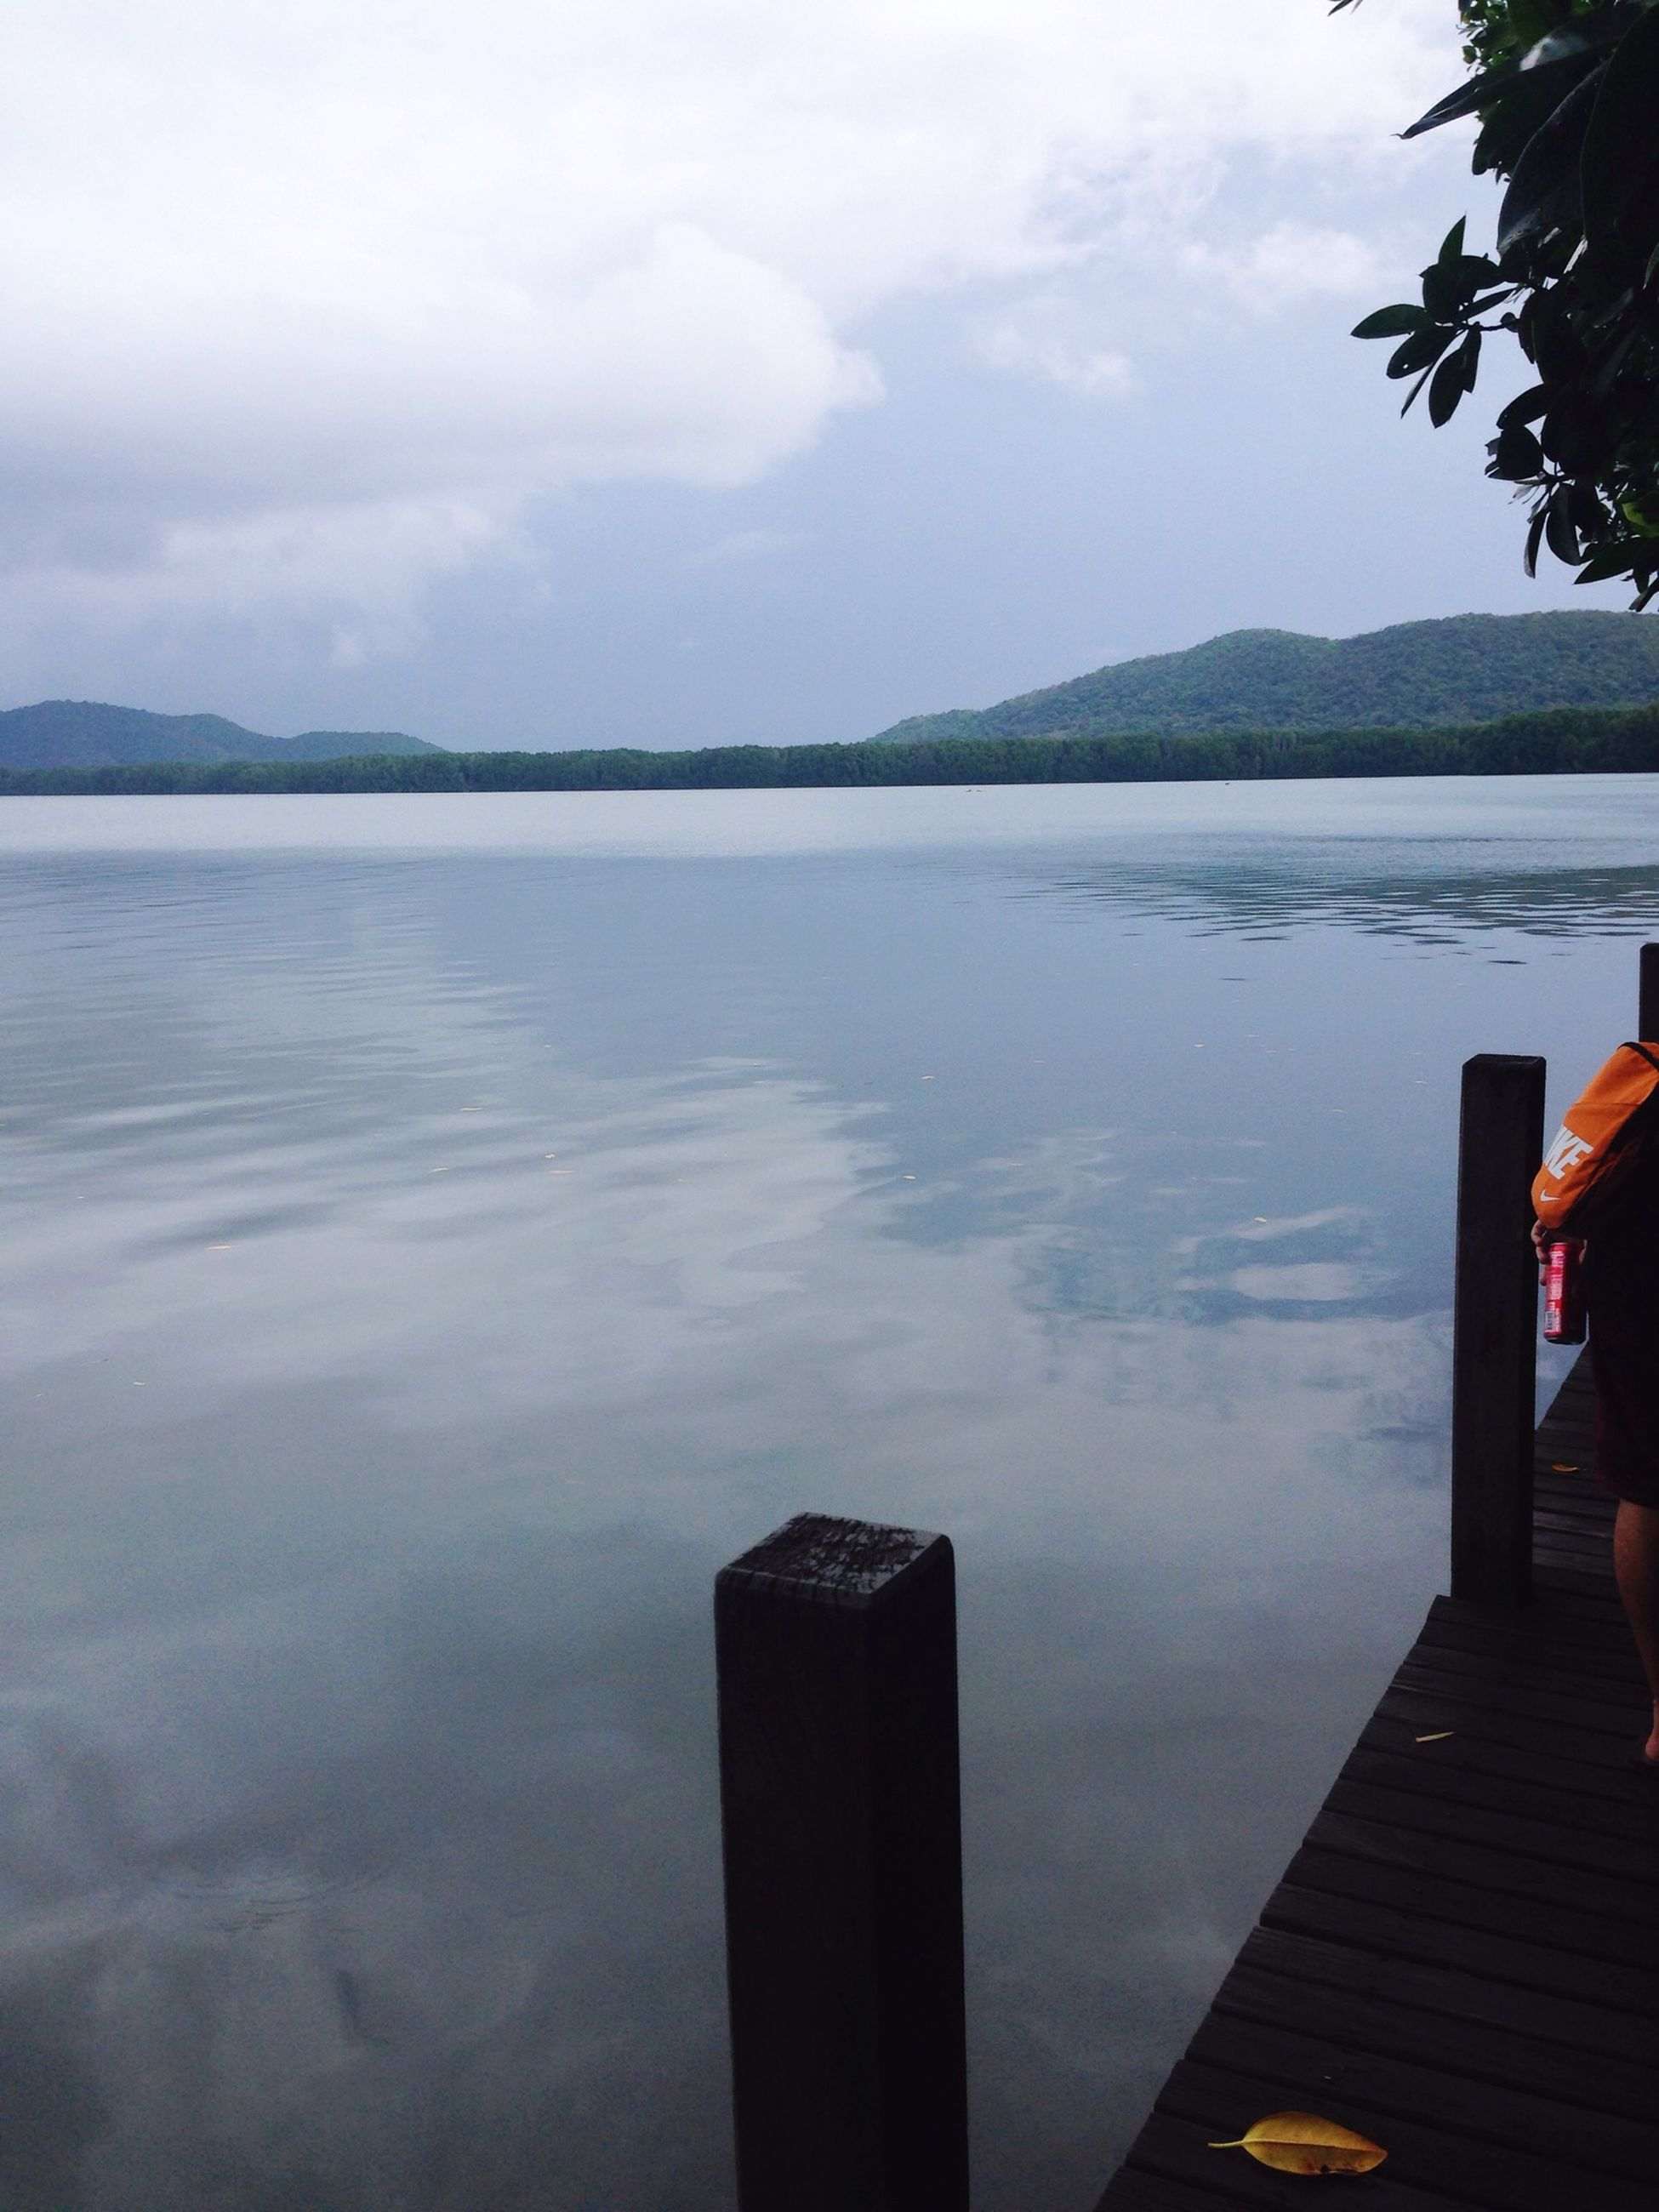 water, sky, lake, tranquil scene, cloud - sky, mountain, tranquility, scenics, beauty in nature, pier, nature, cloud, reflection, cloudy, idyllic, outdoors, day, mountain range, calm, sea